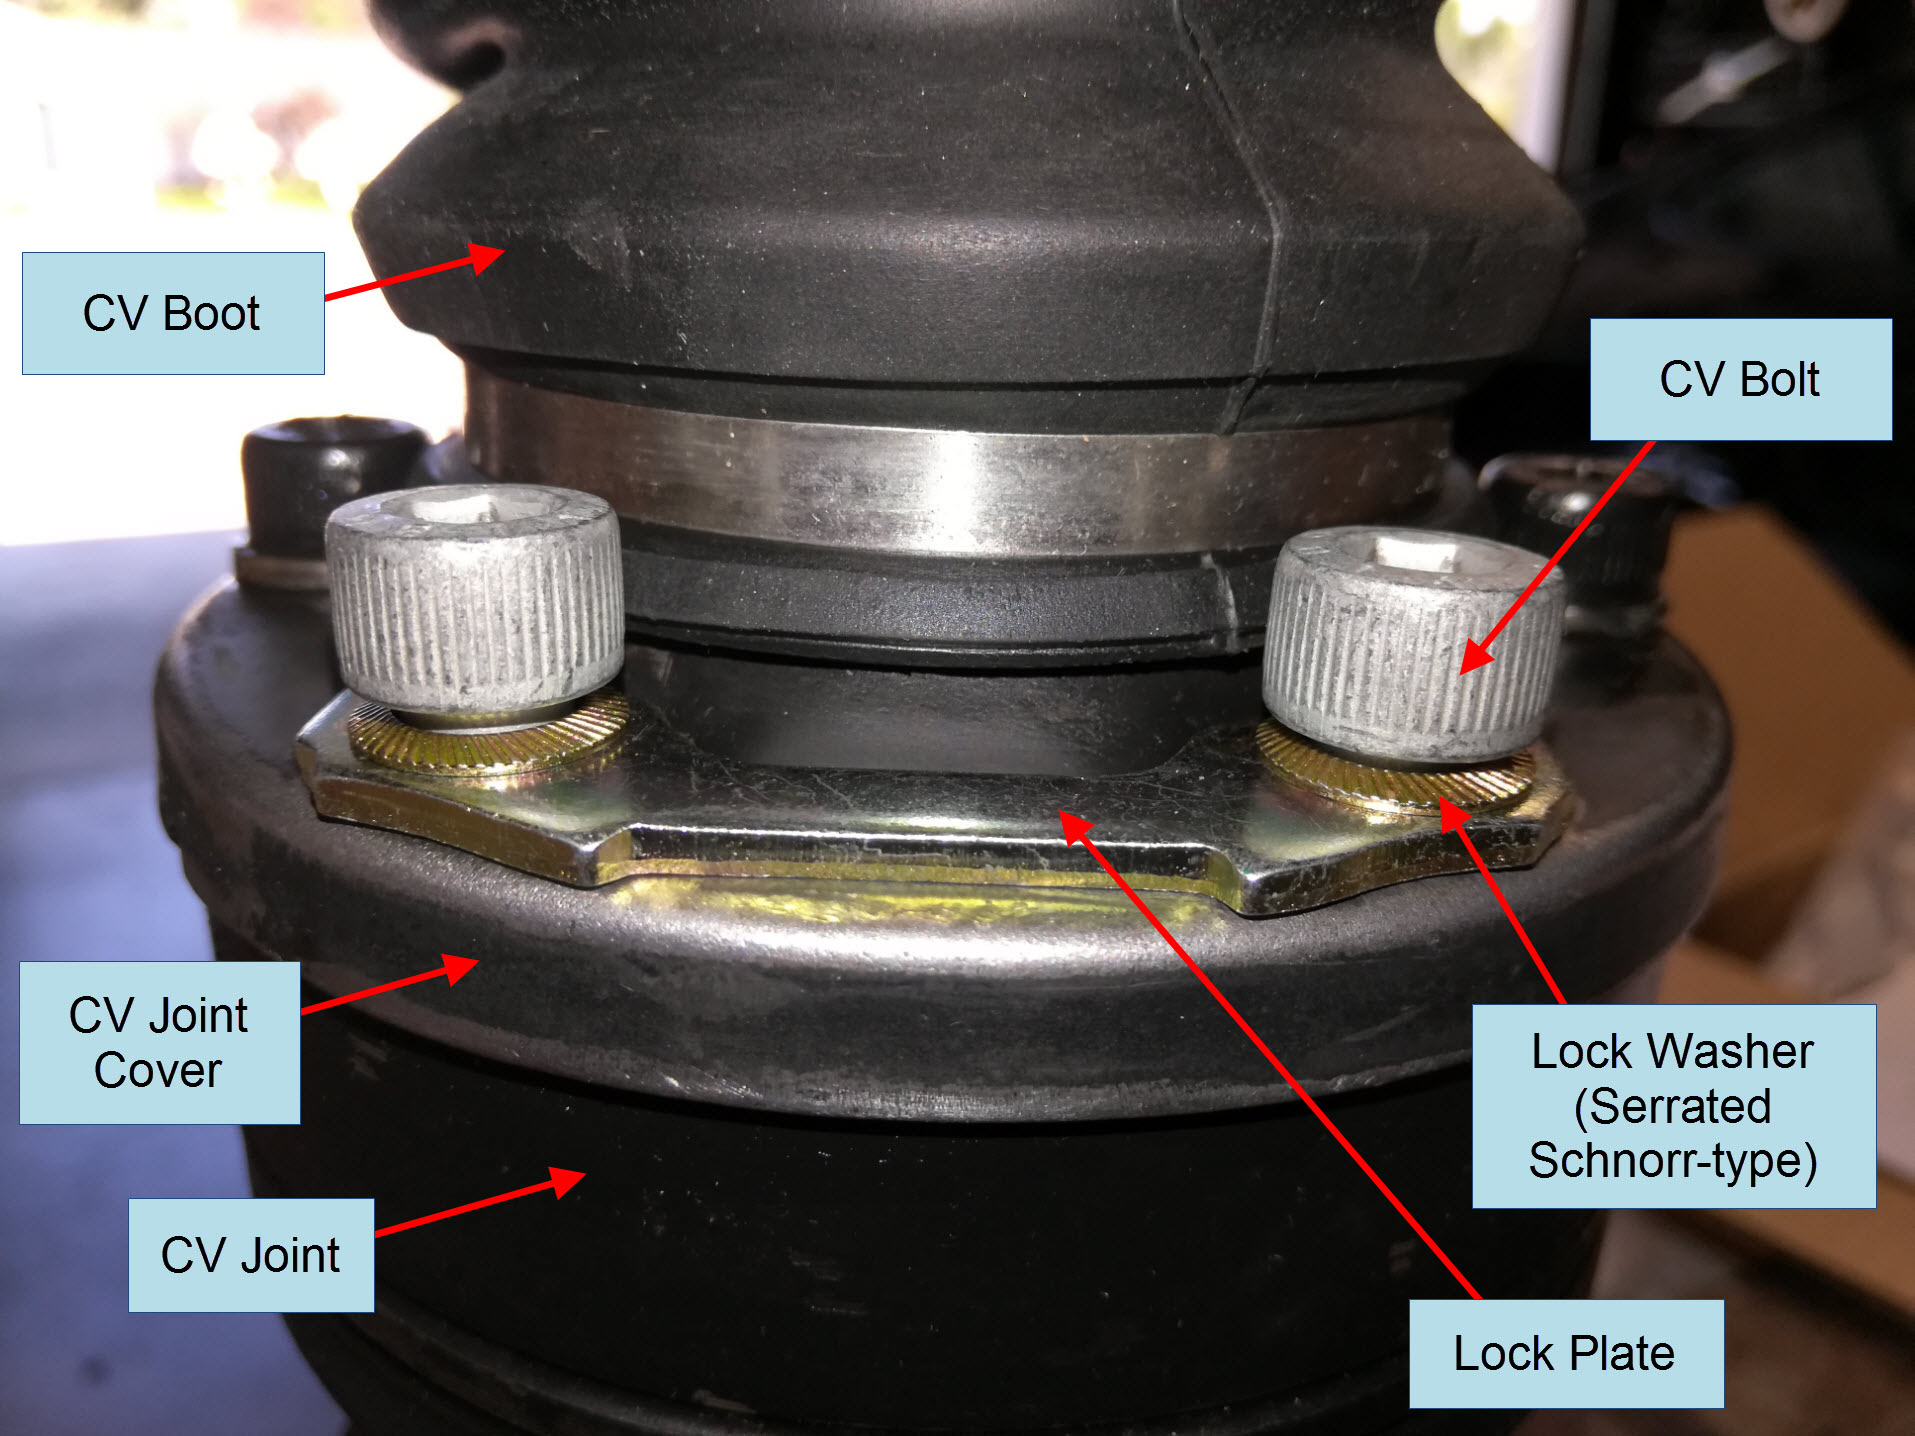 Air-cooled Porsche 911 CV joint mounting hardware detail.